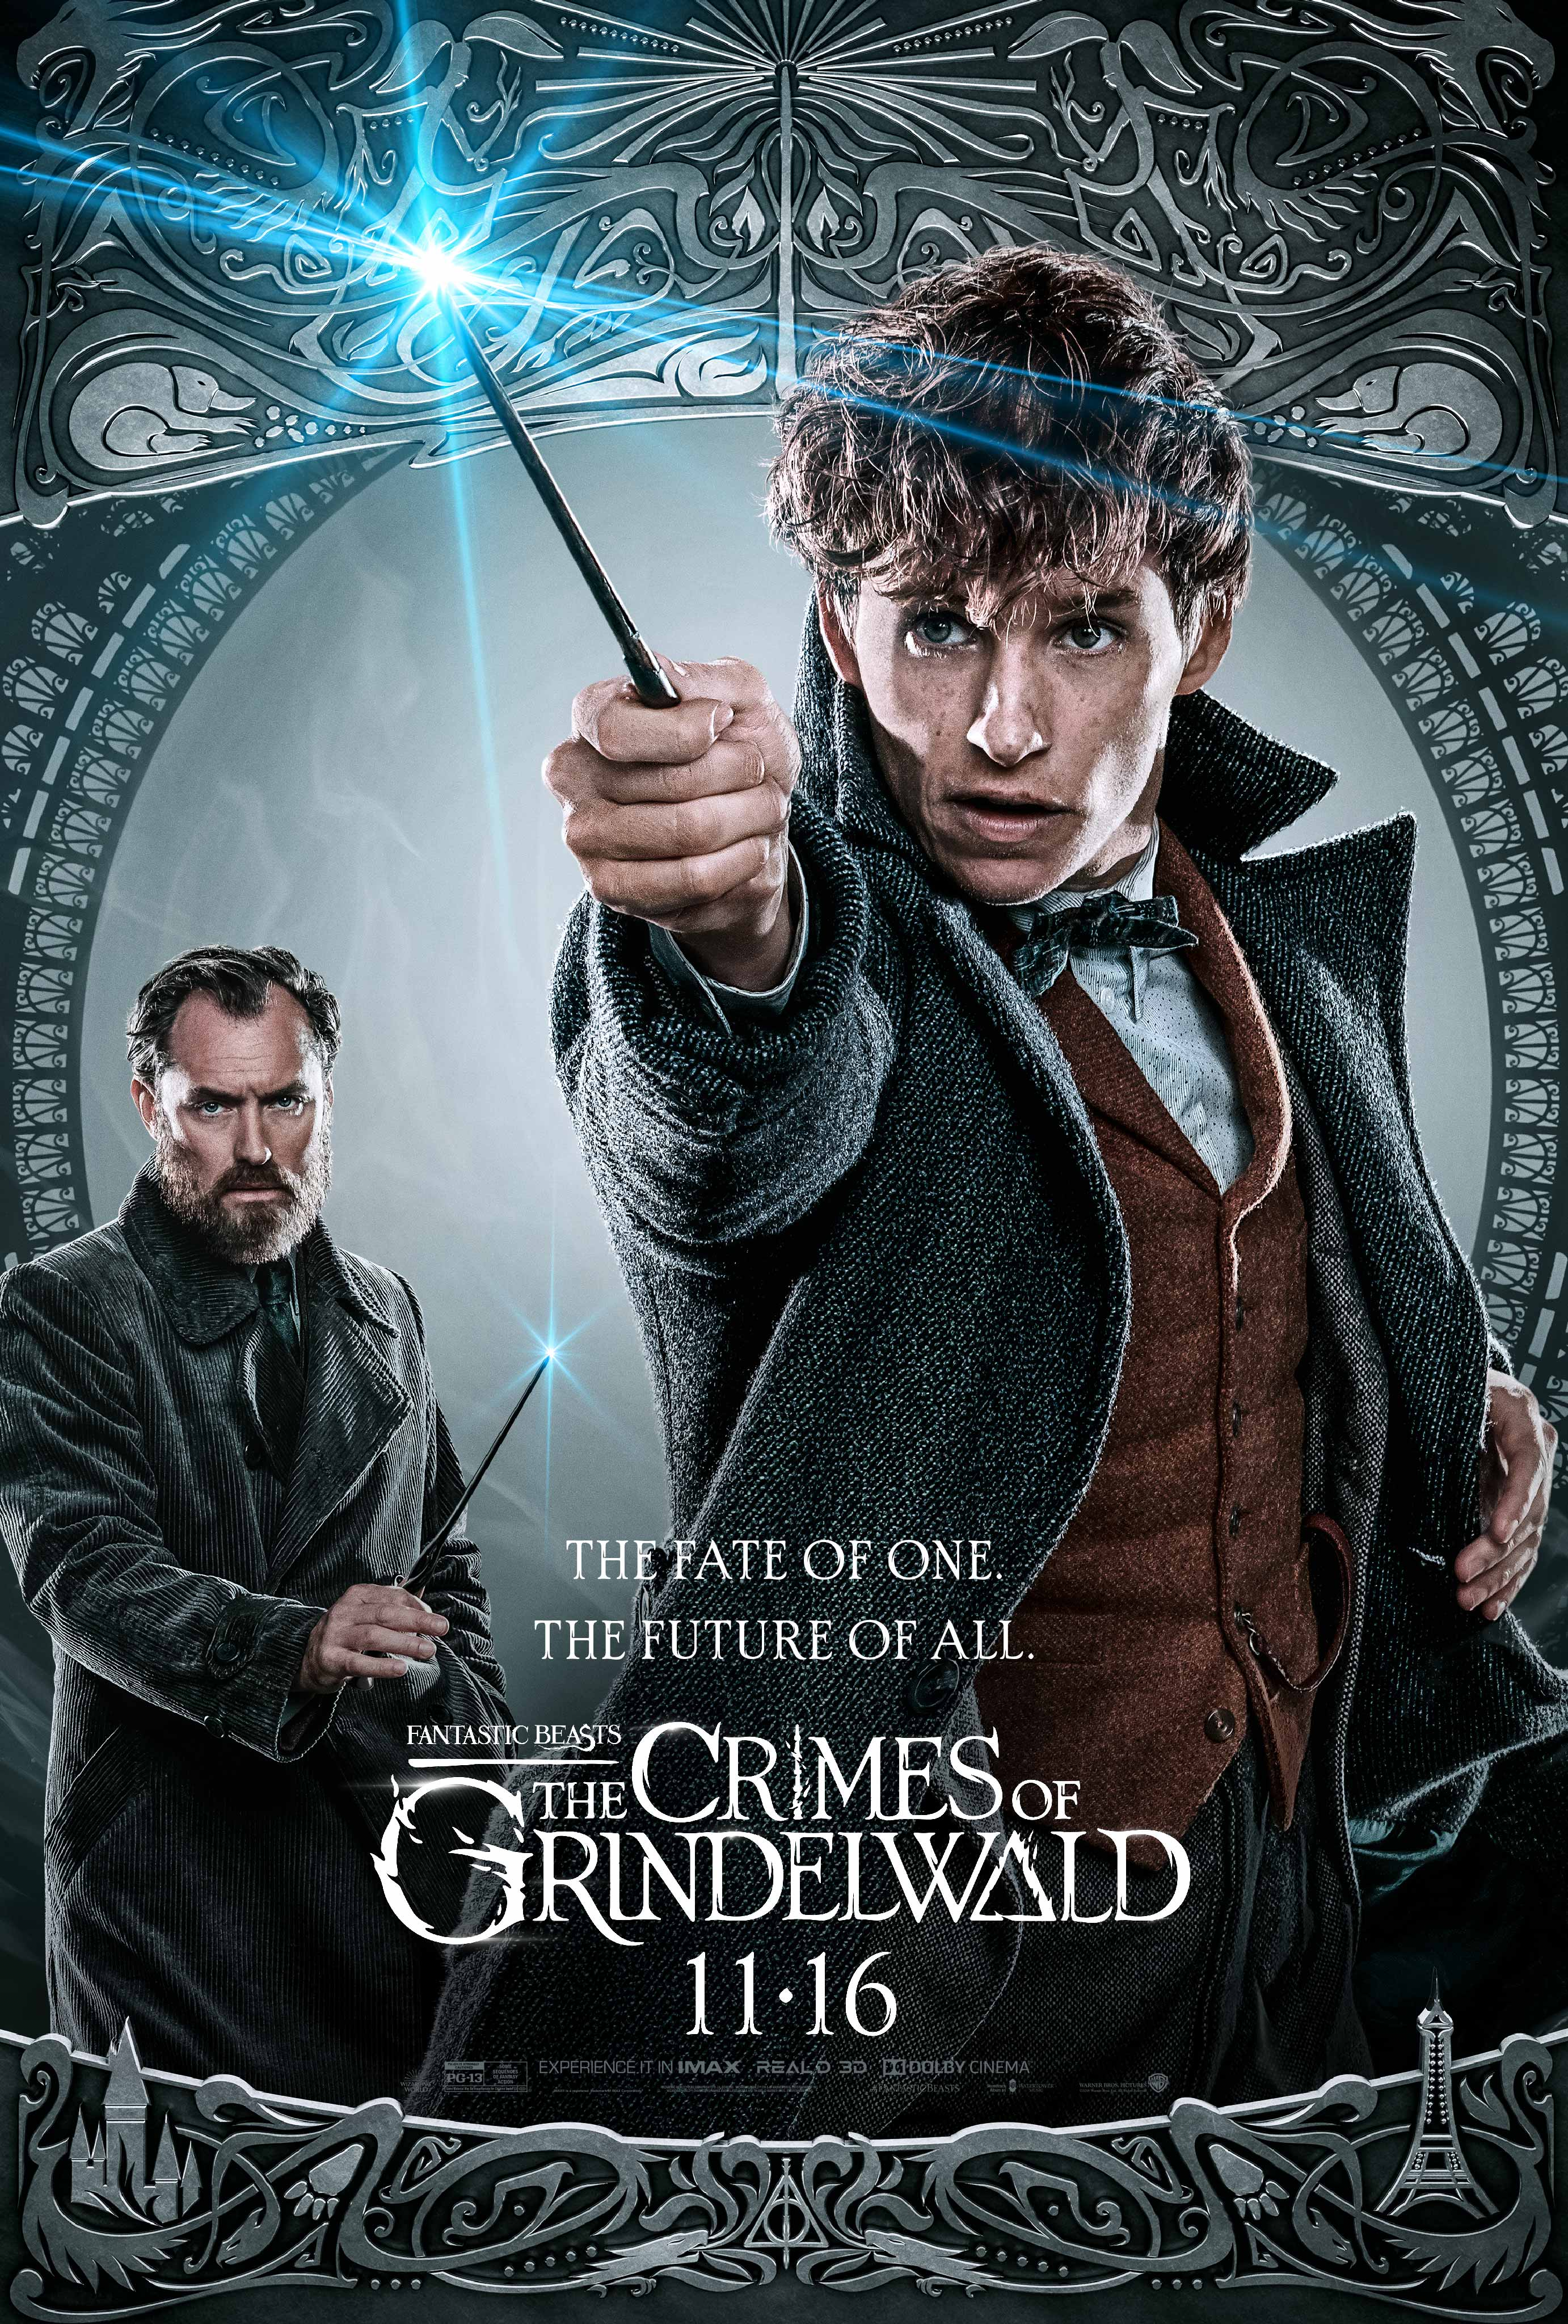 A Graham Reviews Fantastic Beasts The Crimes Of Grindelwald Counter Currents He's like a bird the way he rides the wind! counter currents